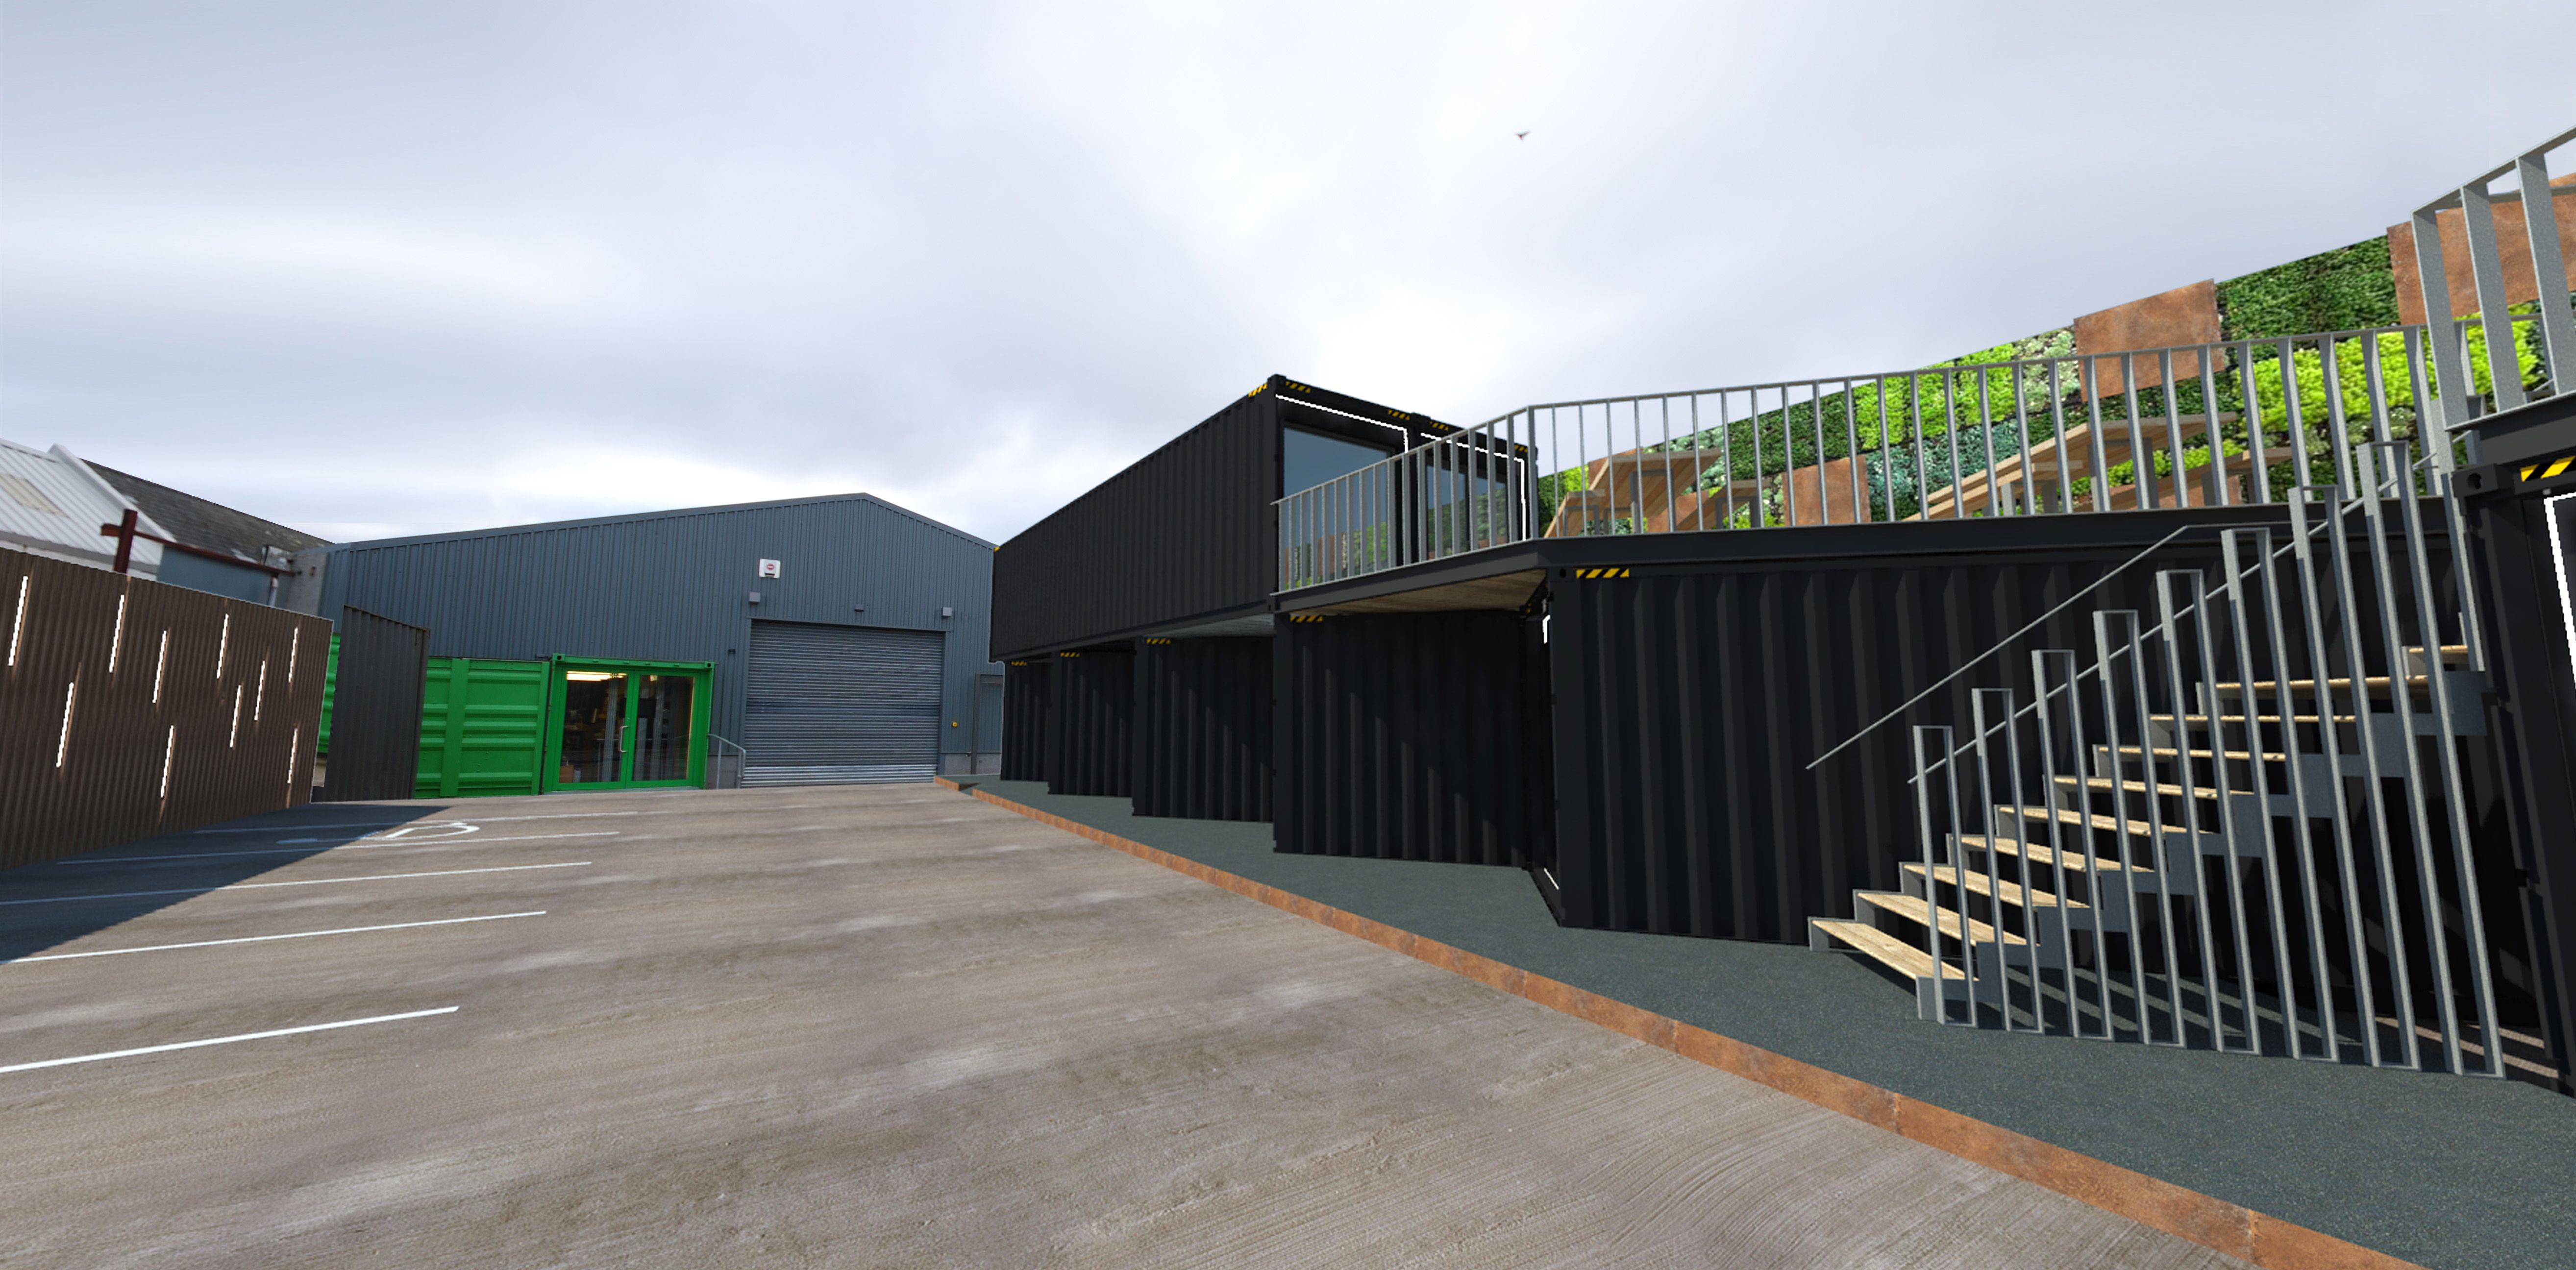 A rendering of the exterior of Bebox our new container based office ...